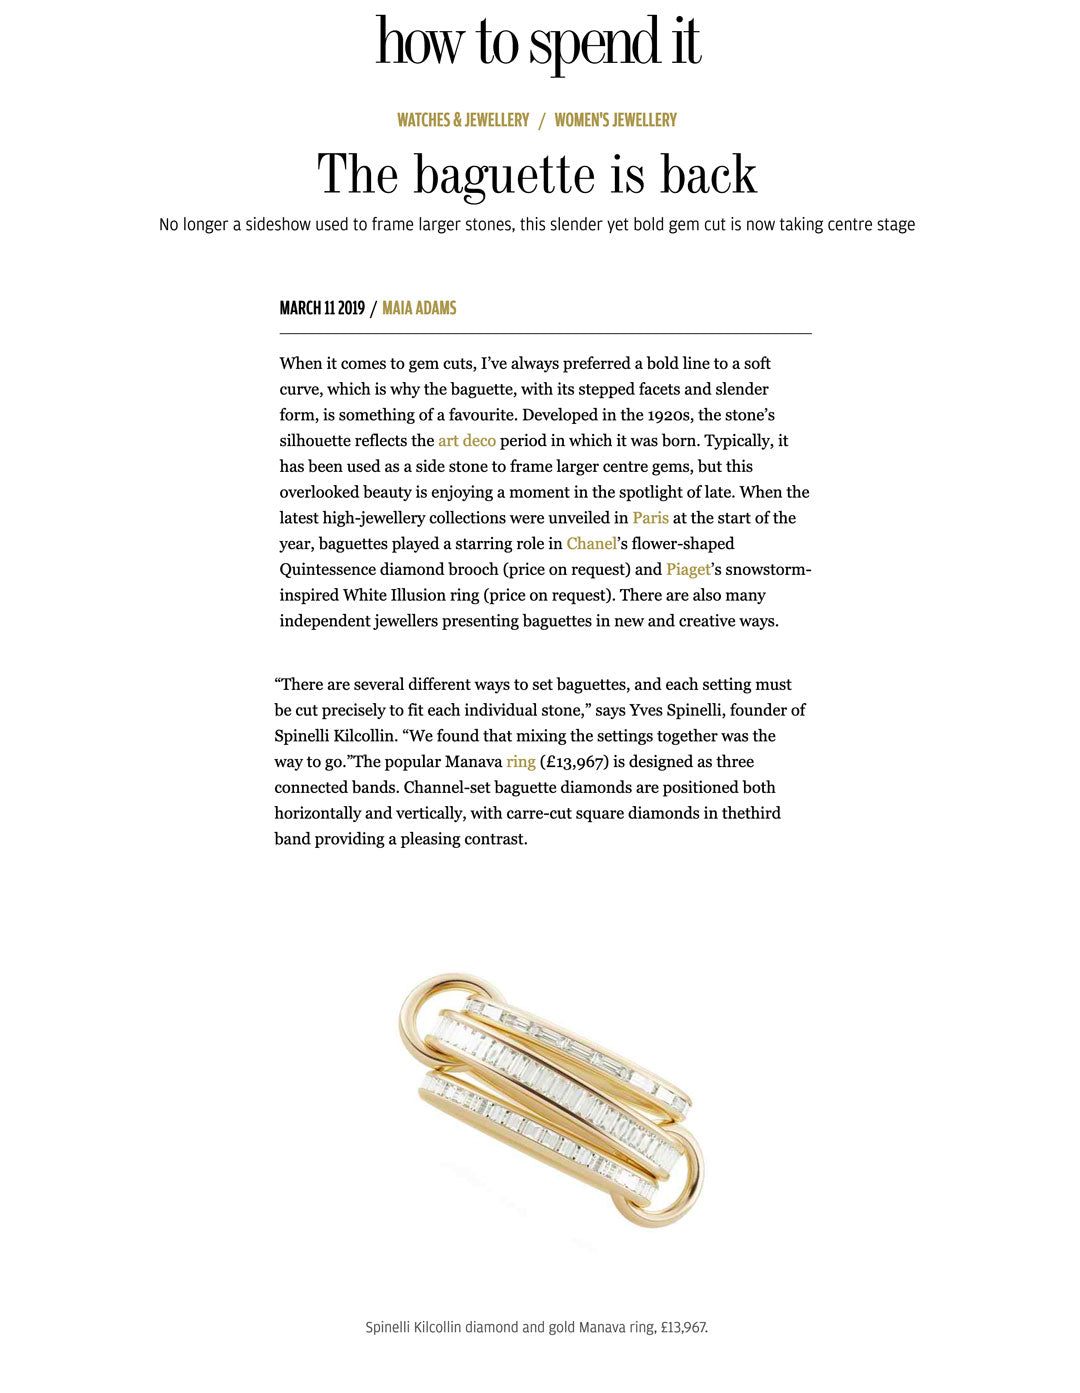 financial times ft how to spend it spinelli kilcollin manava ring linked-ring luxury-jewelry baguette-diamond